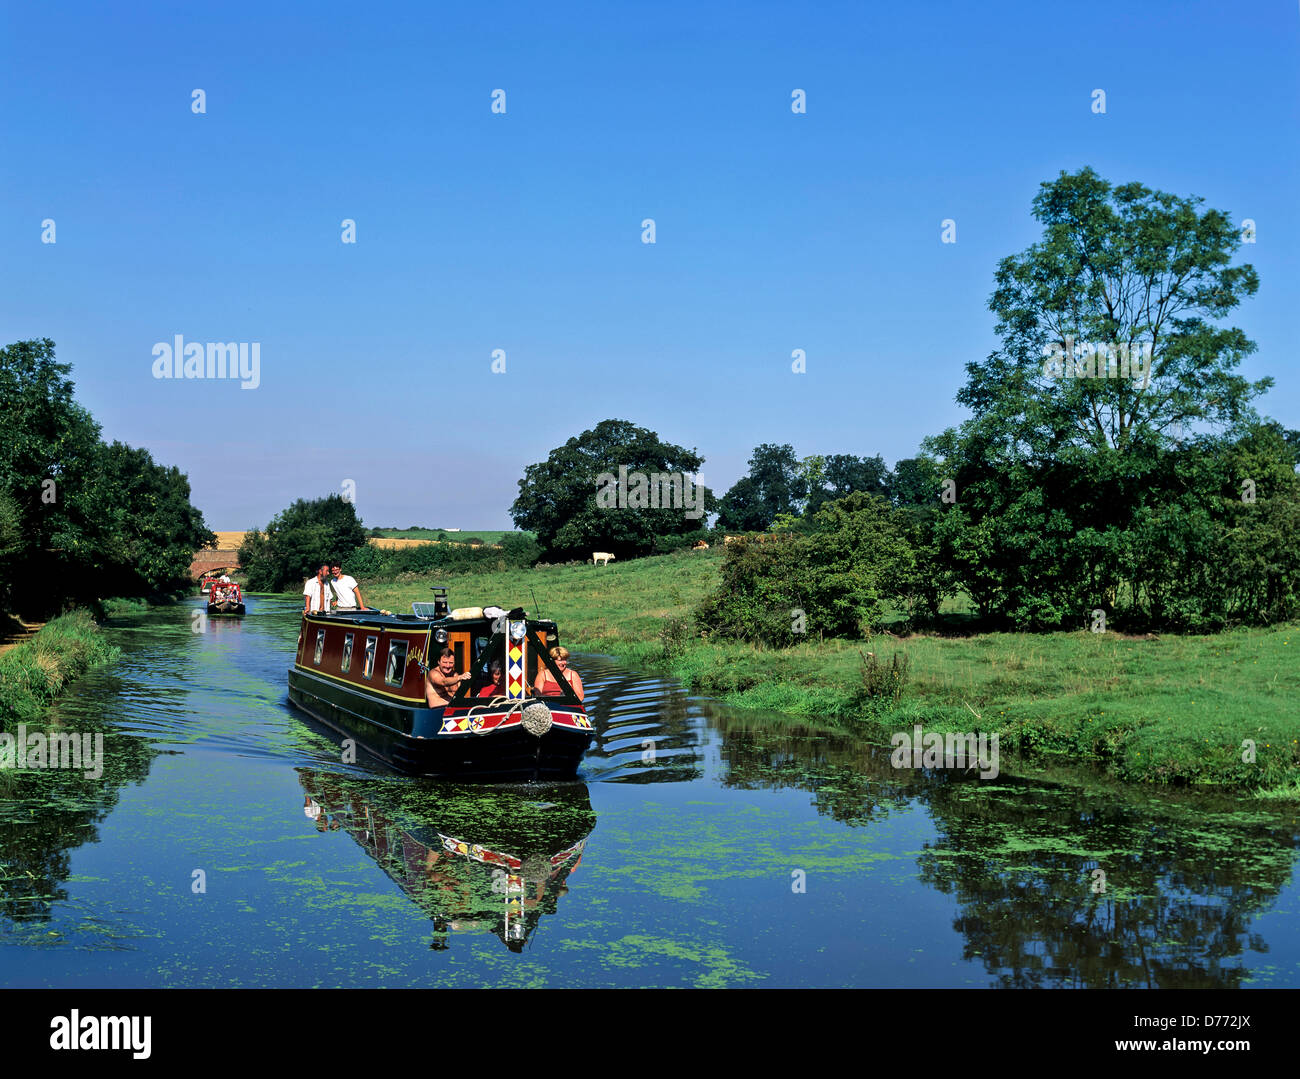 8681. Narrow boat on the Oxford canal, Warwickshire, England, UK, Europe - Stock Image